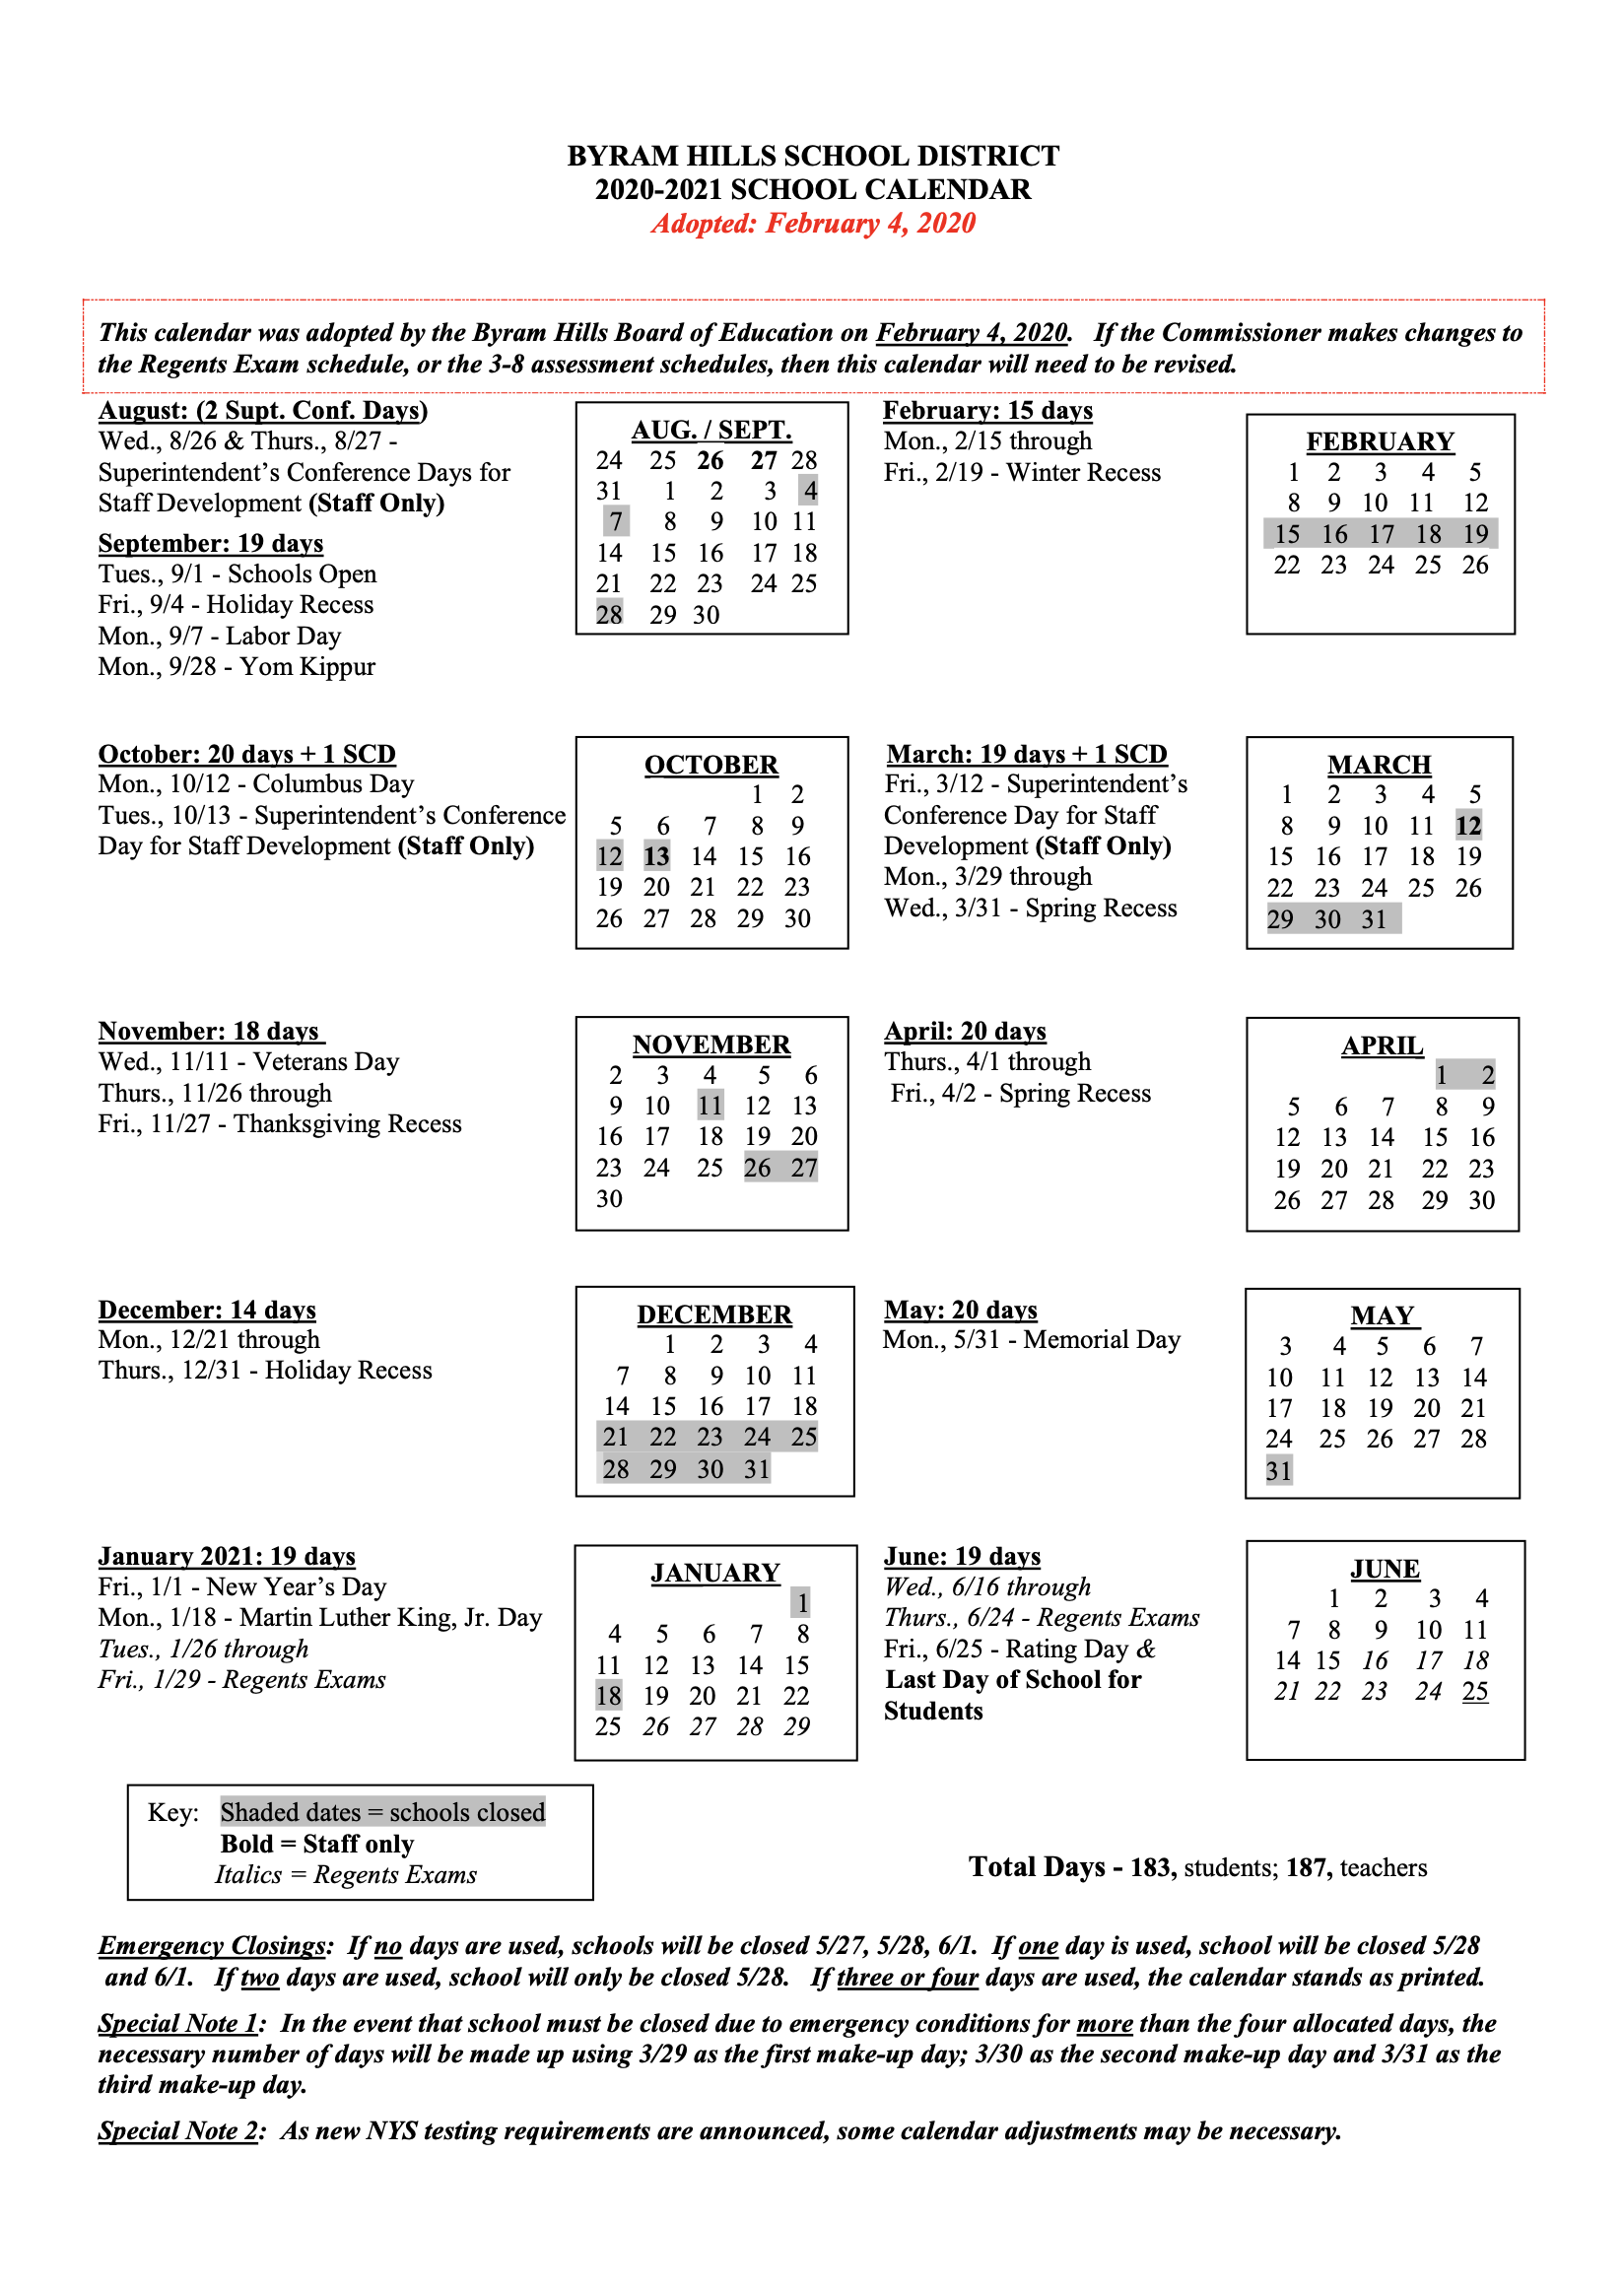 Calendar   Byram Hills Central School District